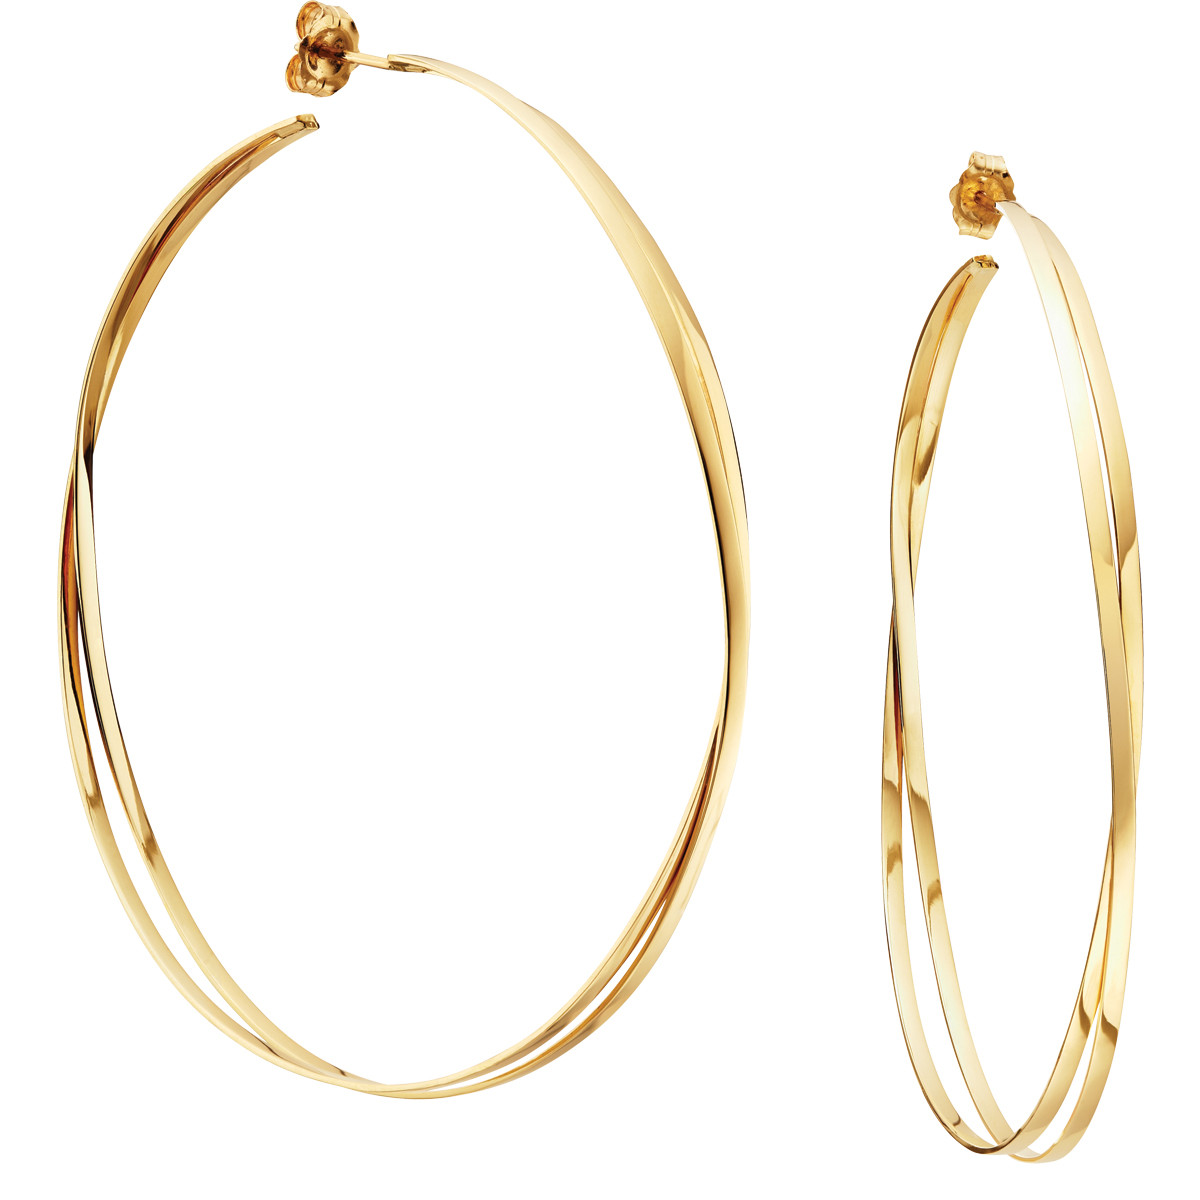 Lana Jewelry Decades Twisted Hoops